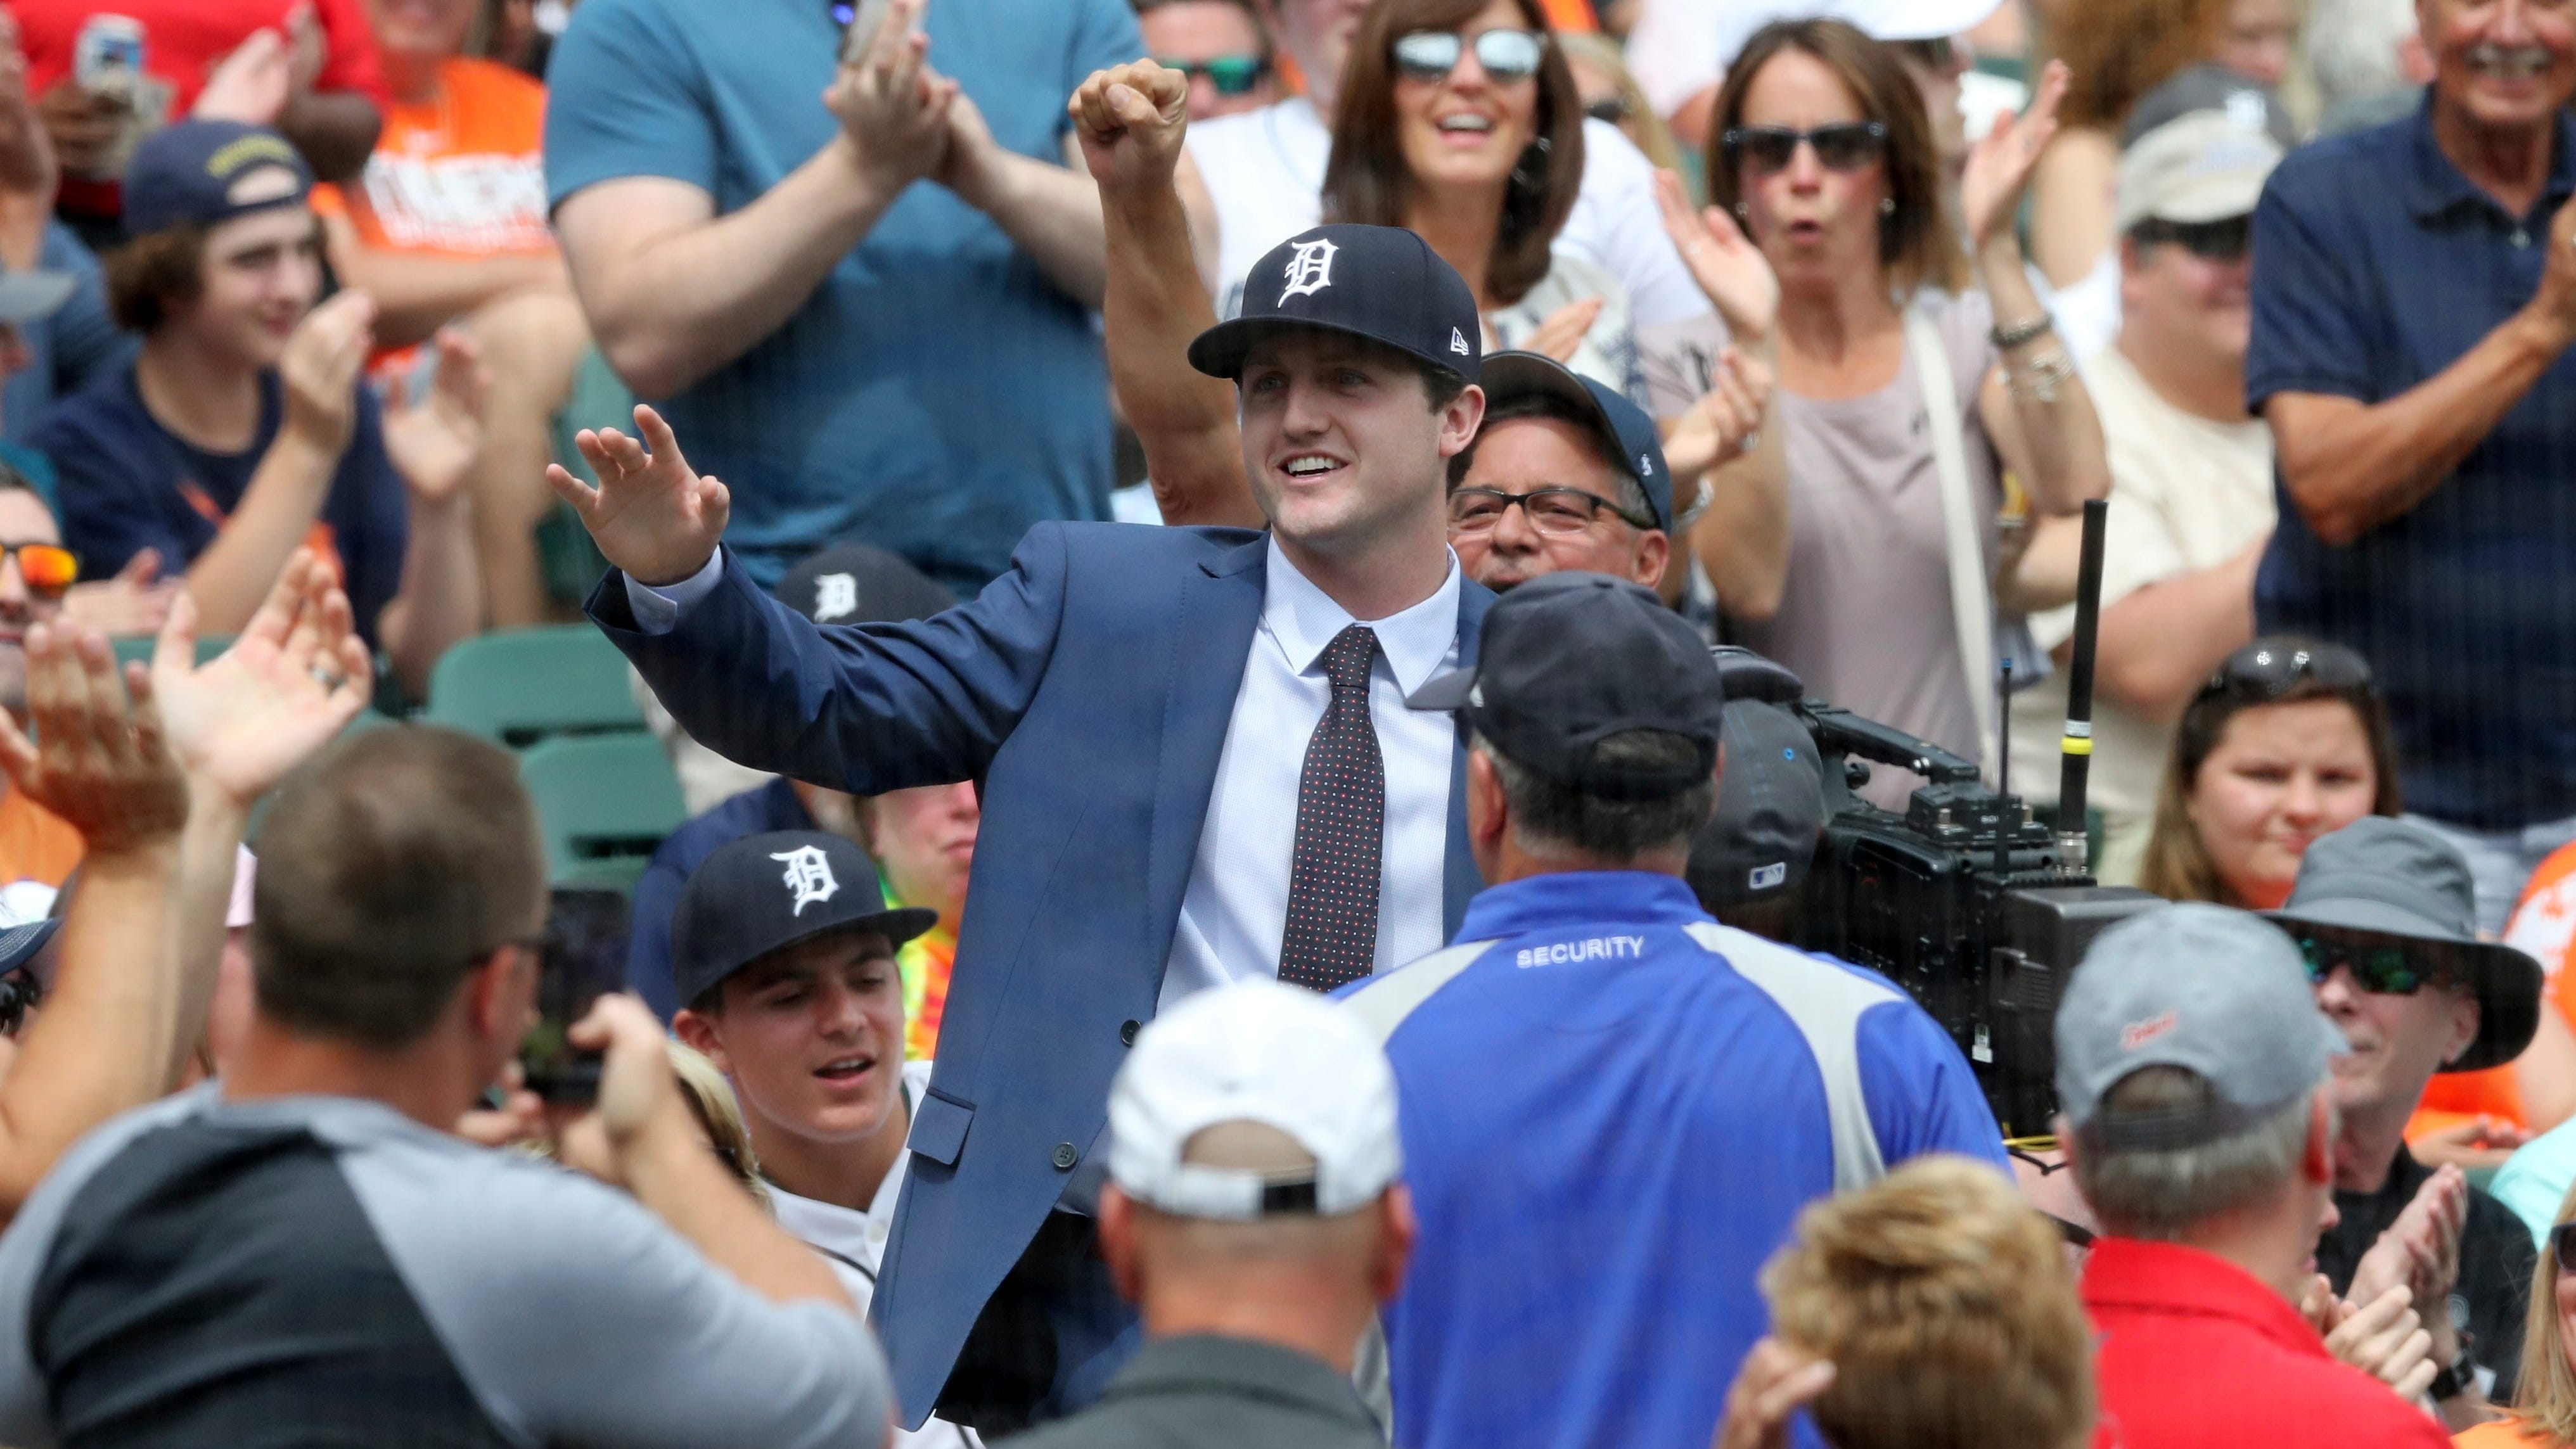 Detroit Tigers first overall pick Casey Mize is introduced to the crowd during the third inning of a baseball game between the Detroit Tigers and the Oakland Athletics, on June 25 in Detroit.